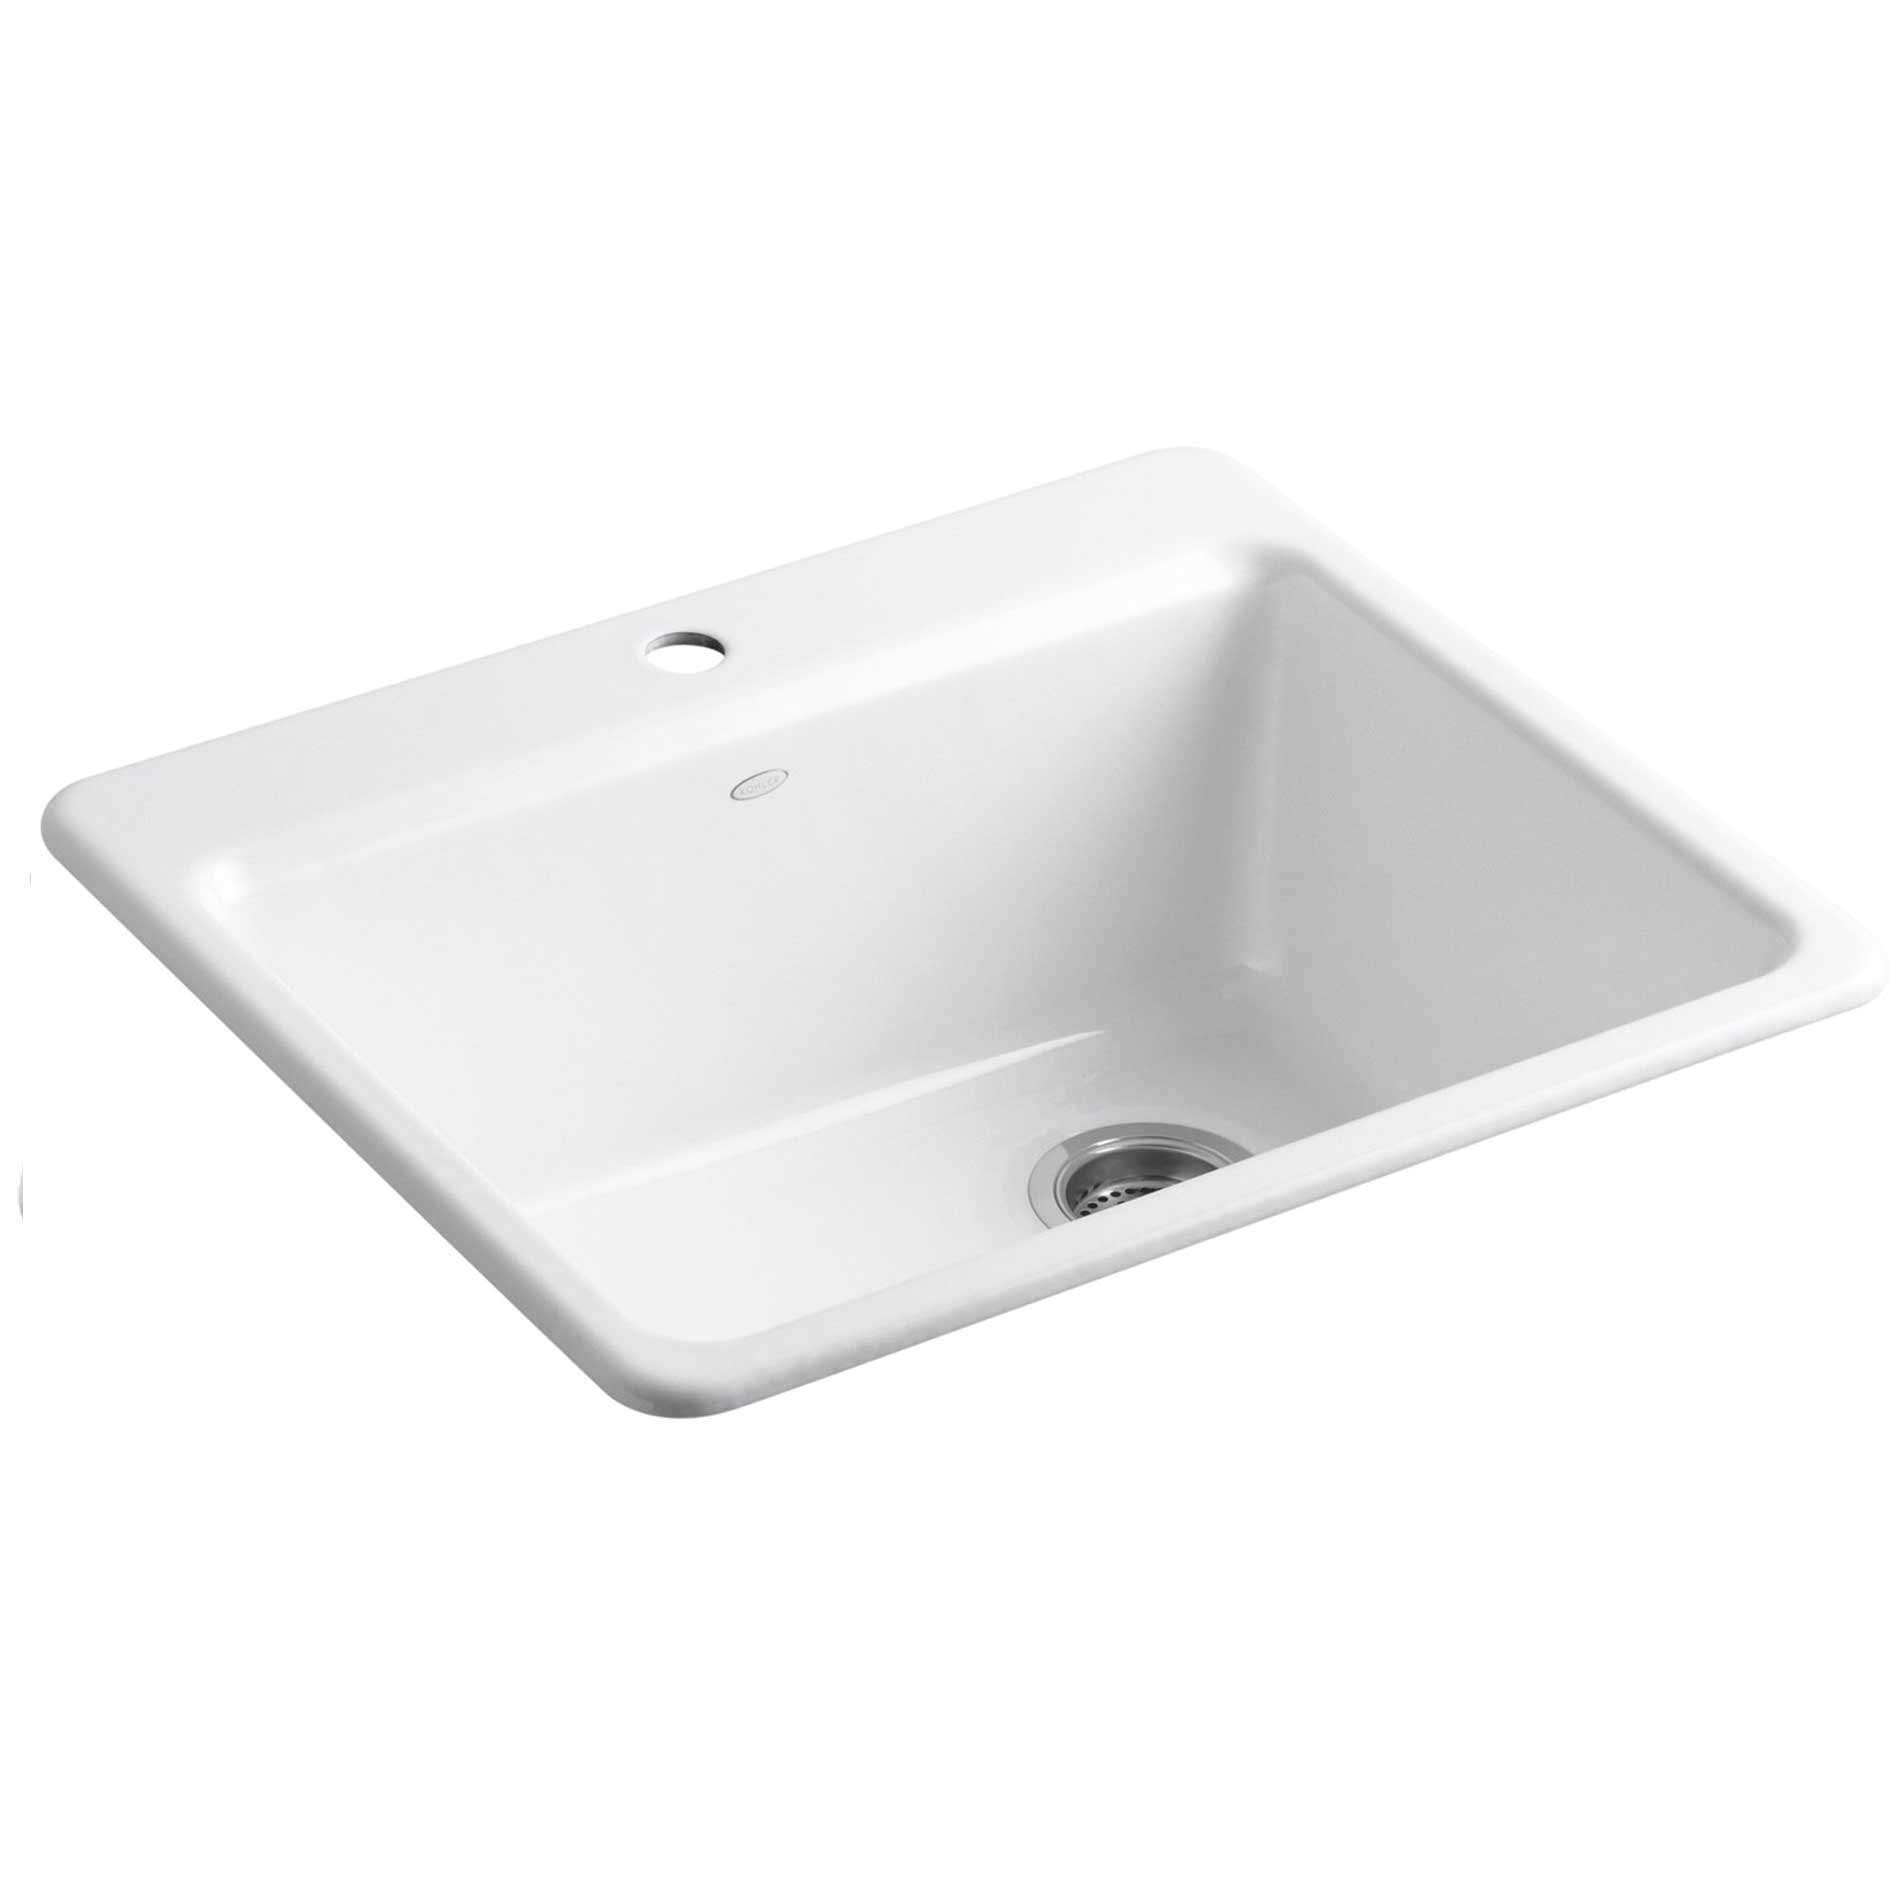 Picture of Riverby 5872 Inset Cast Iron Sink